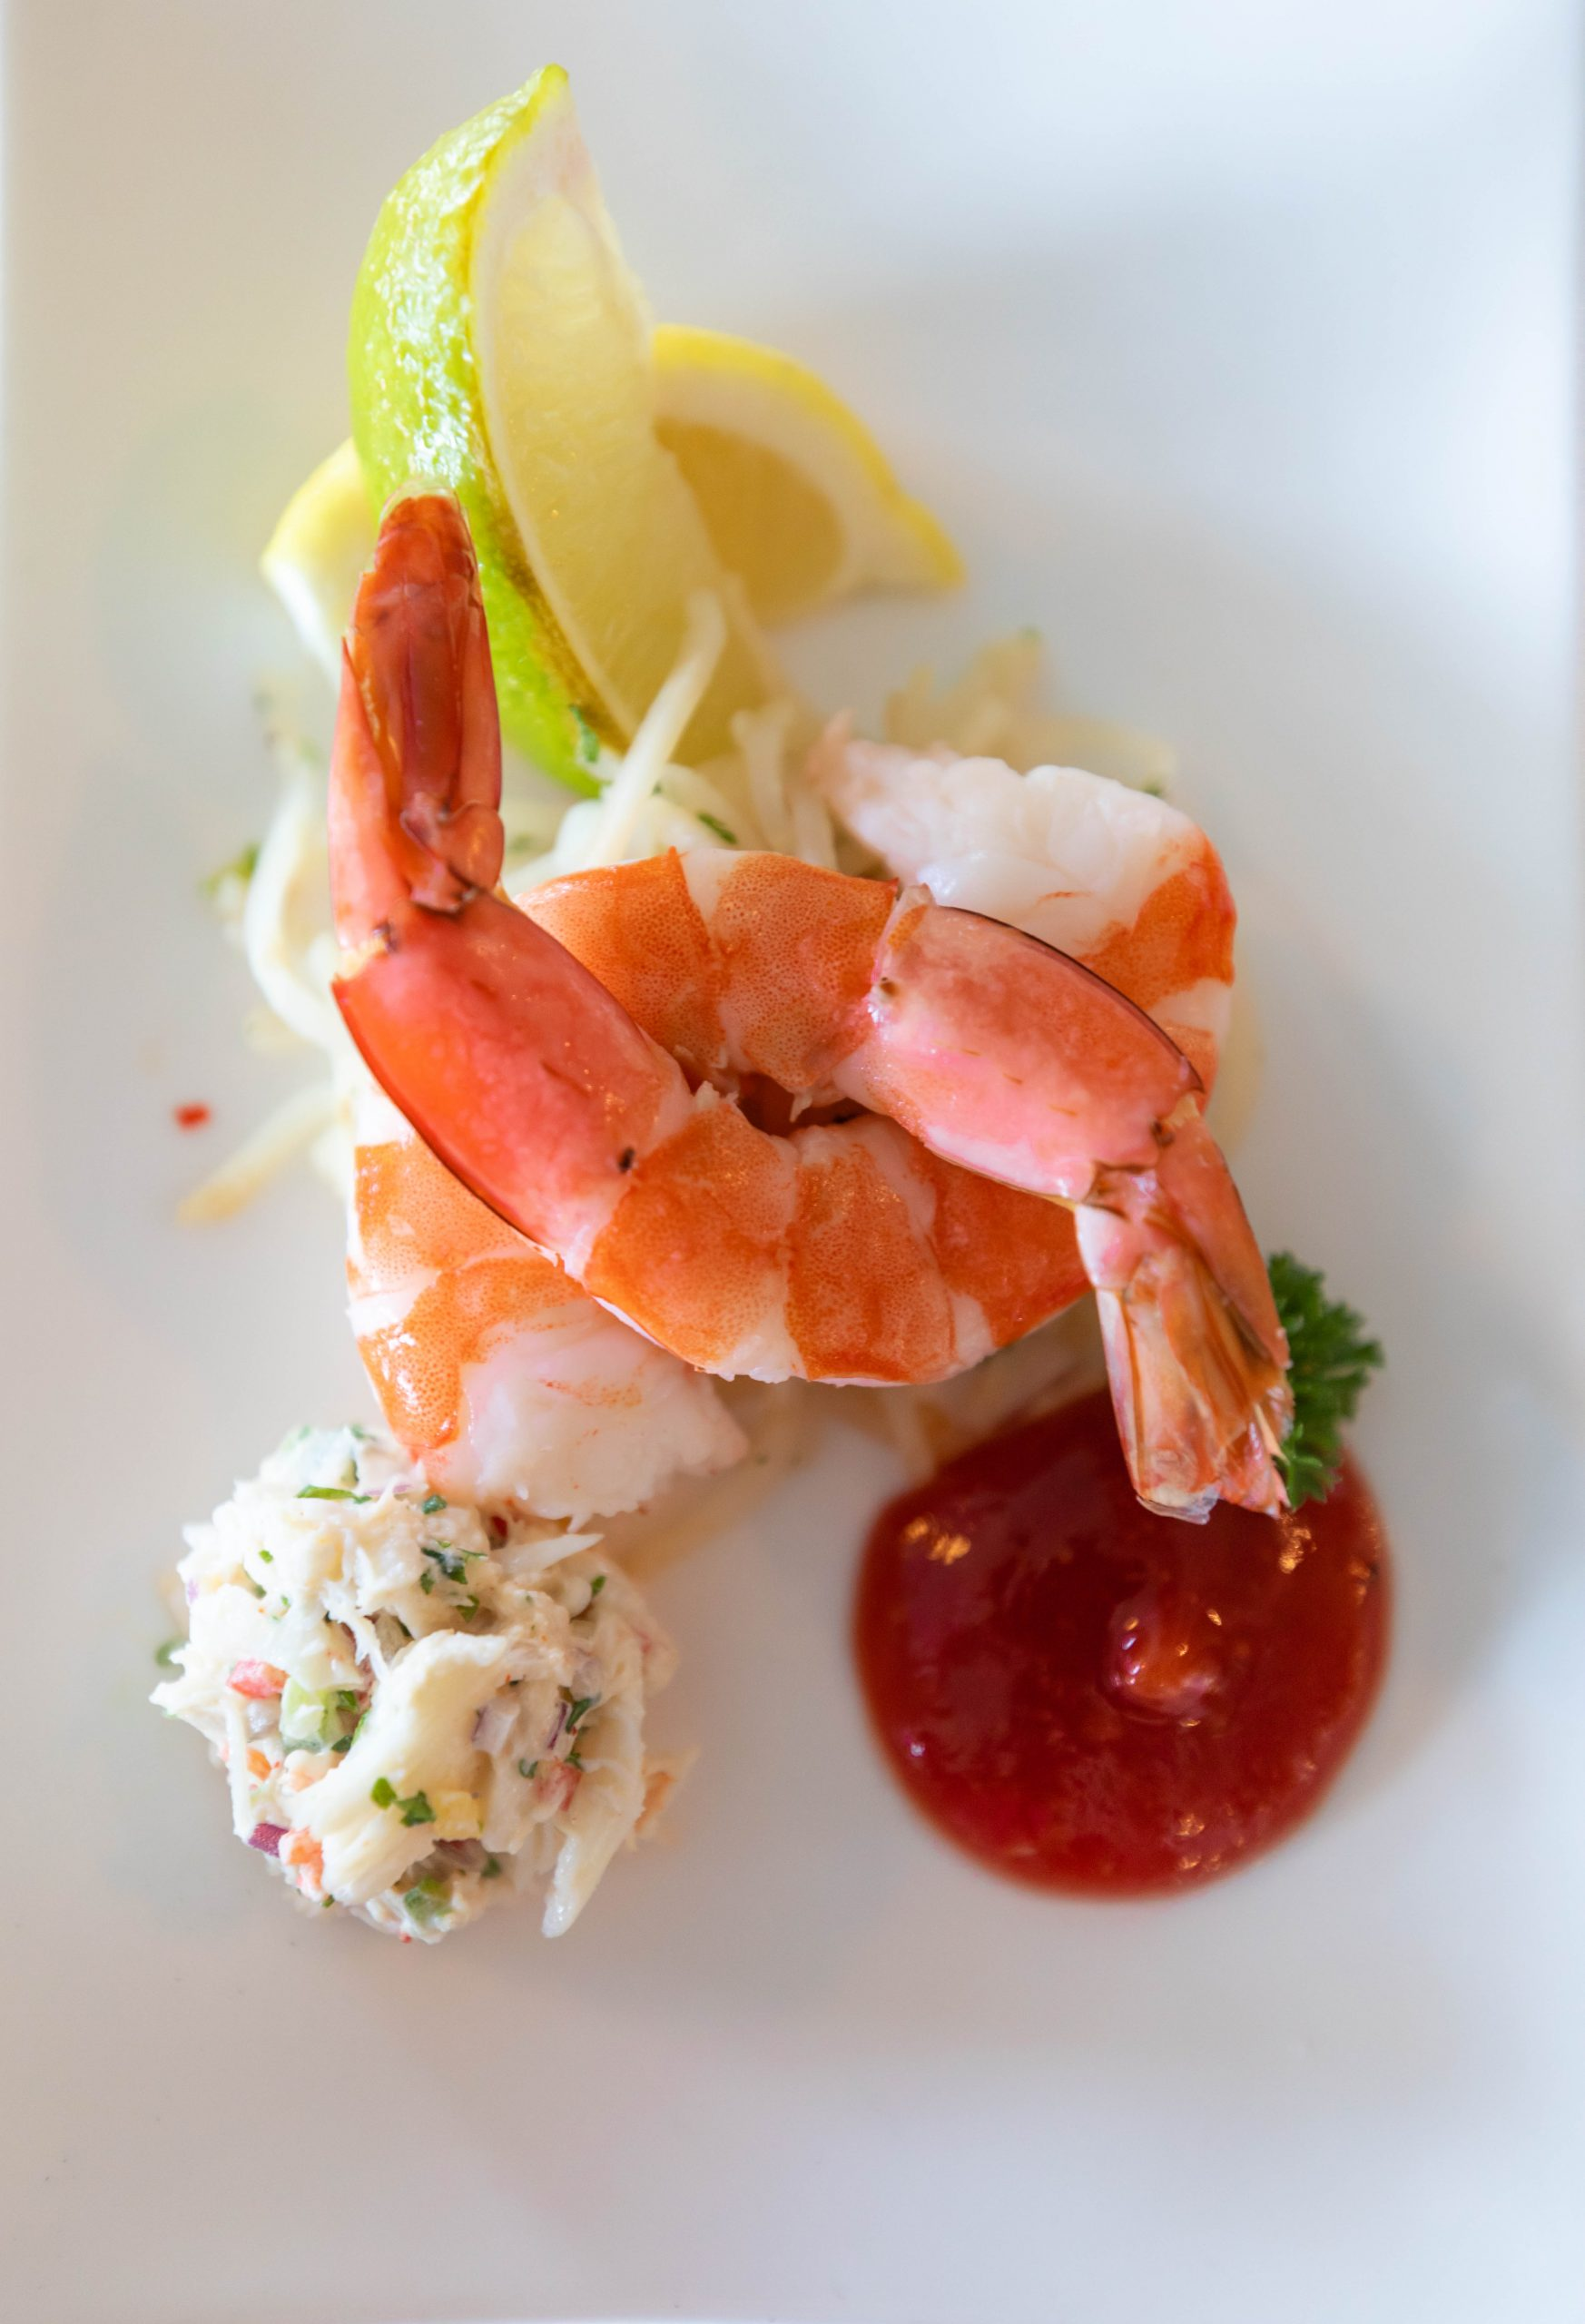 Chilled Jumbo Shrimp at Grand Hotel on Mackinac Island Michigan Fine Dining Options Photographed and Written by Annie Fairfax